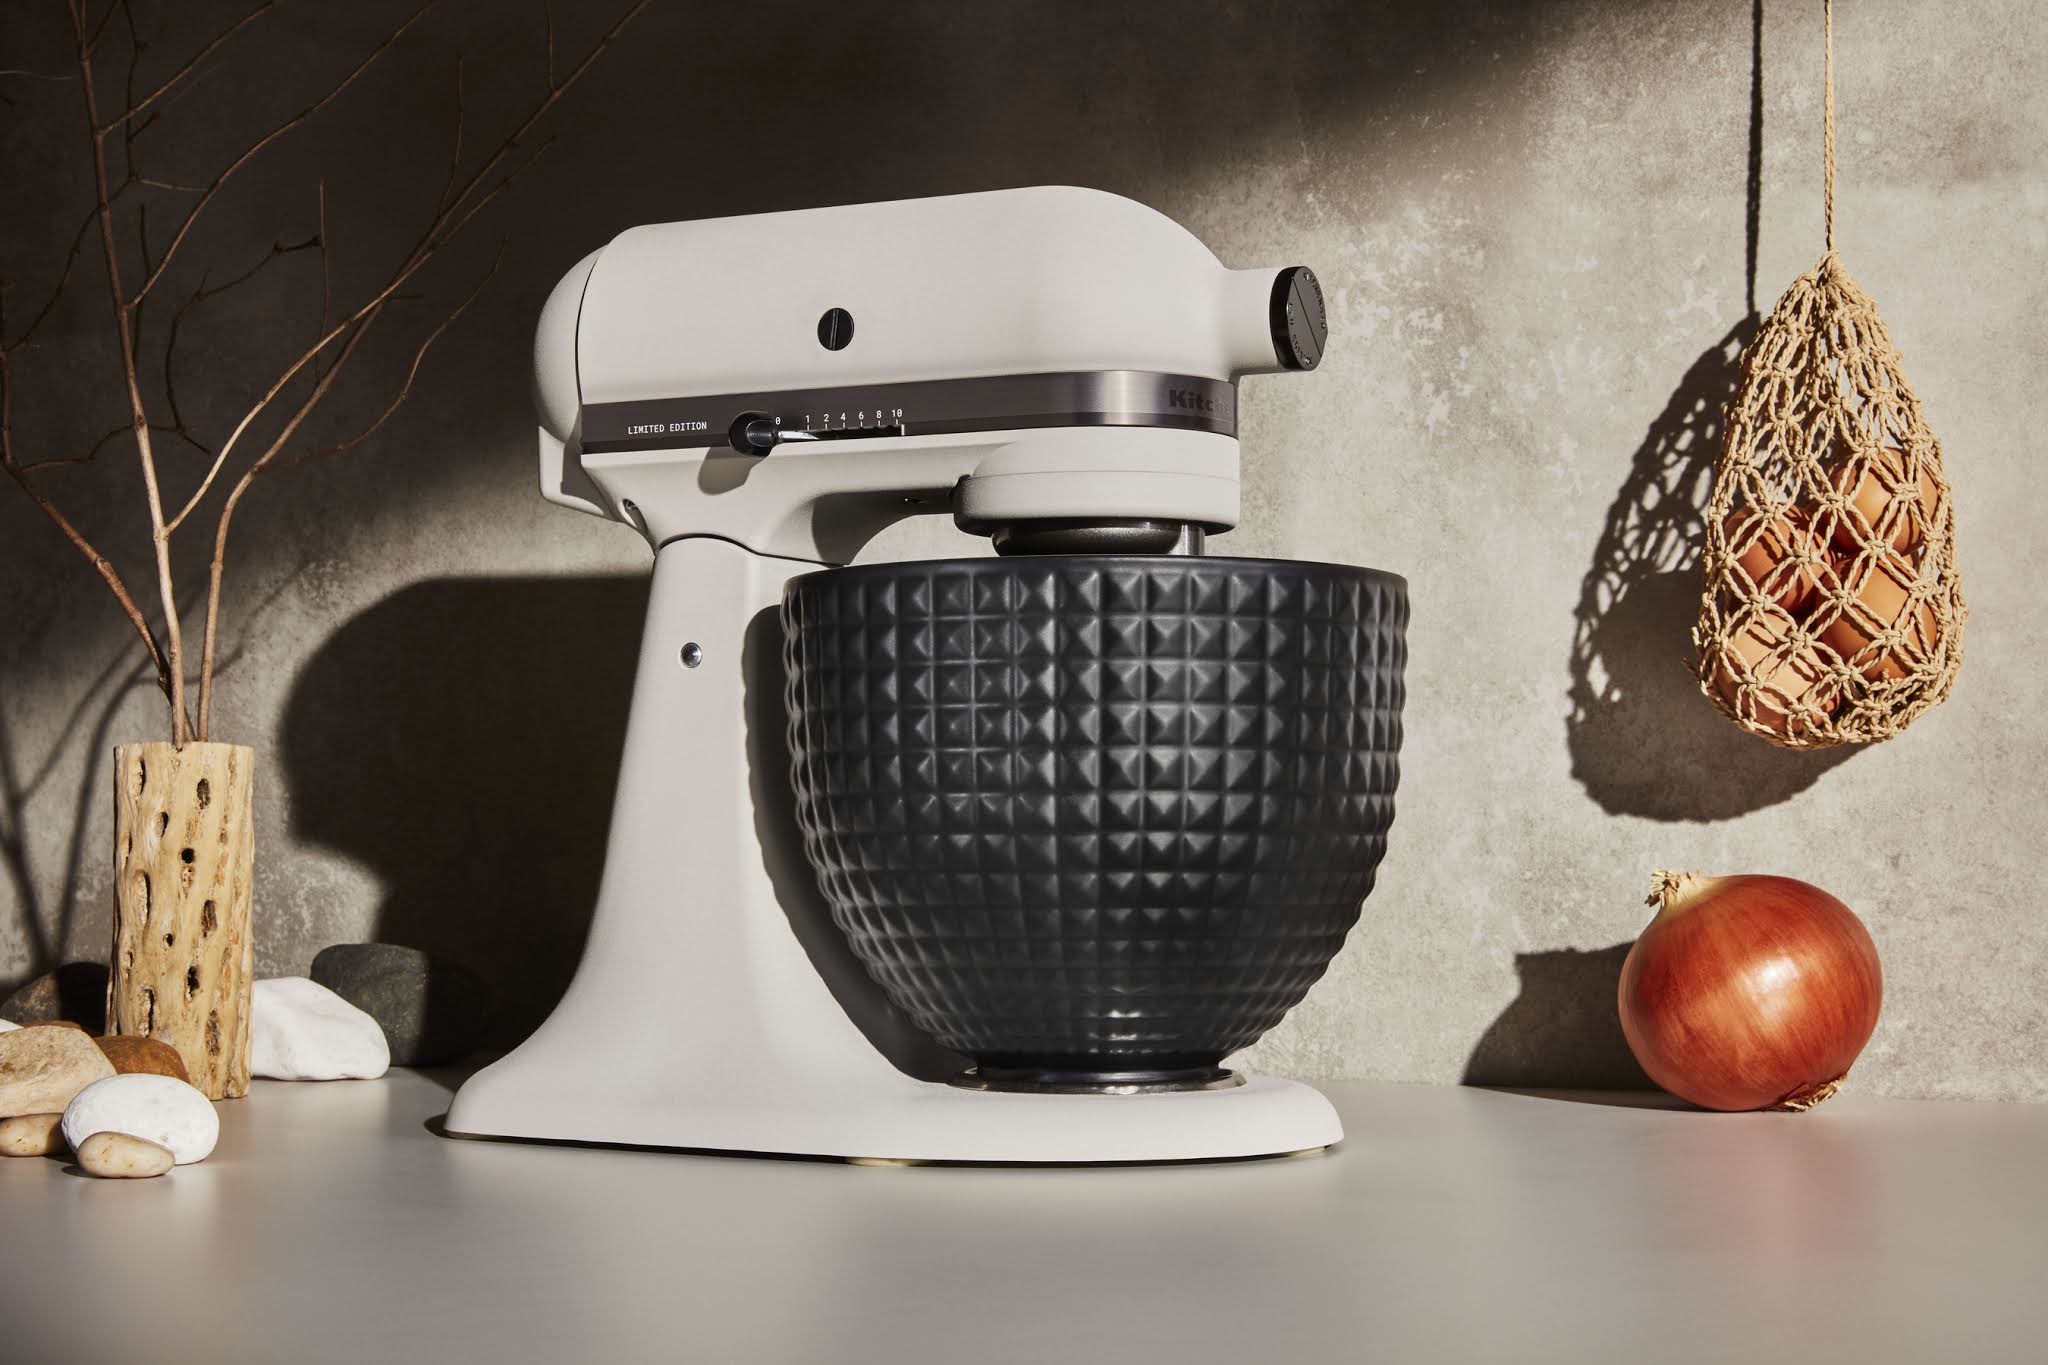 KitchenAid Illuminates How Inspiration Can Strike At Any Moment With Design-Forward, Limited Edition Stand Mixer